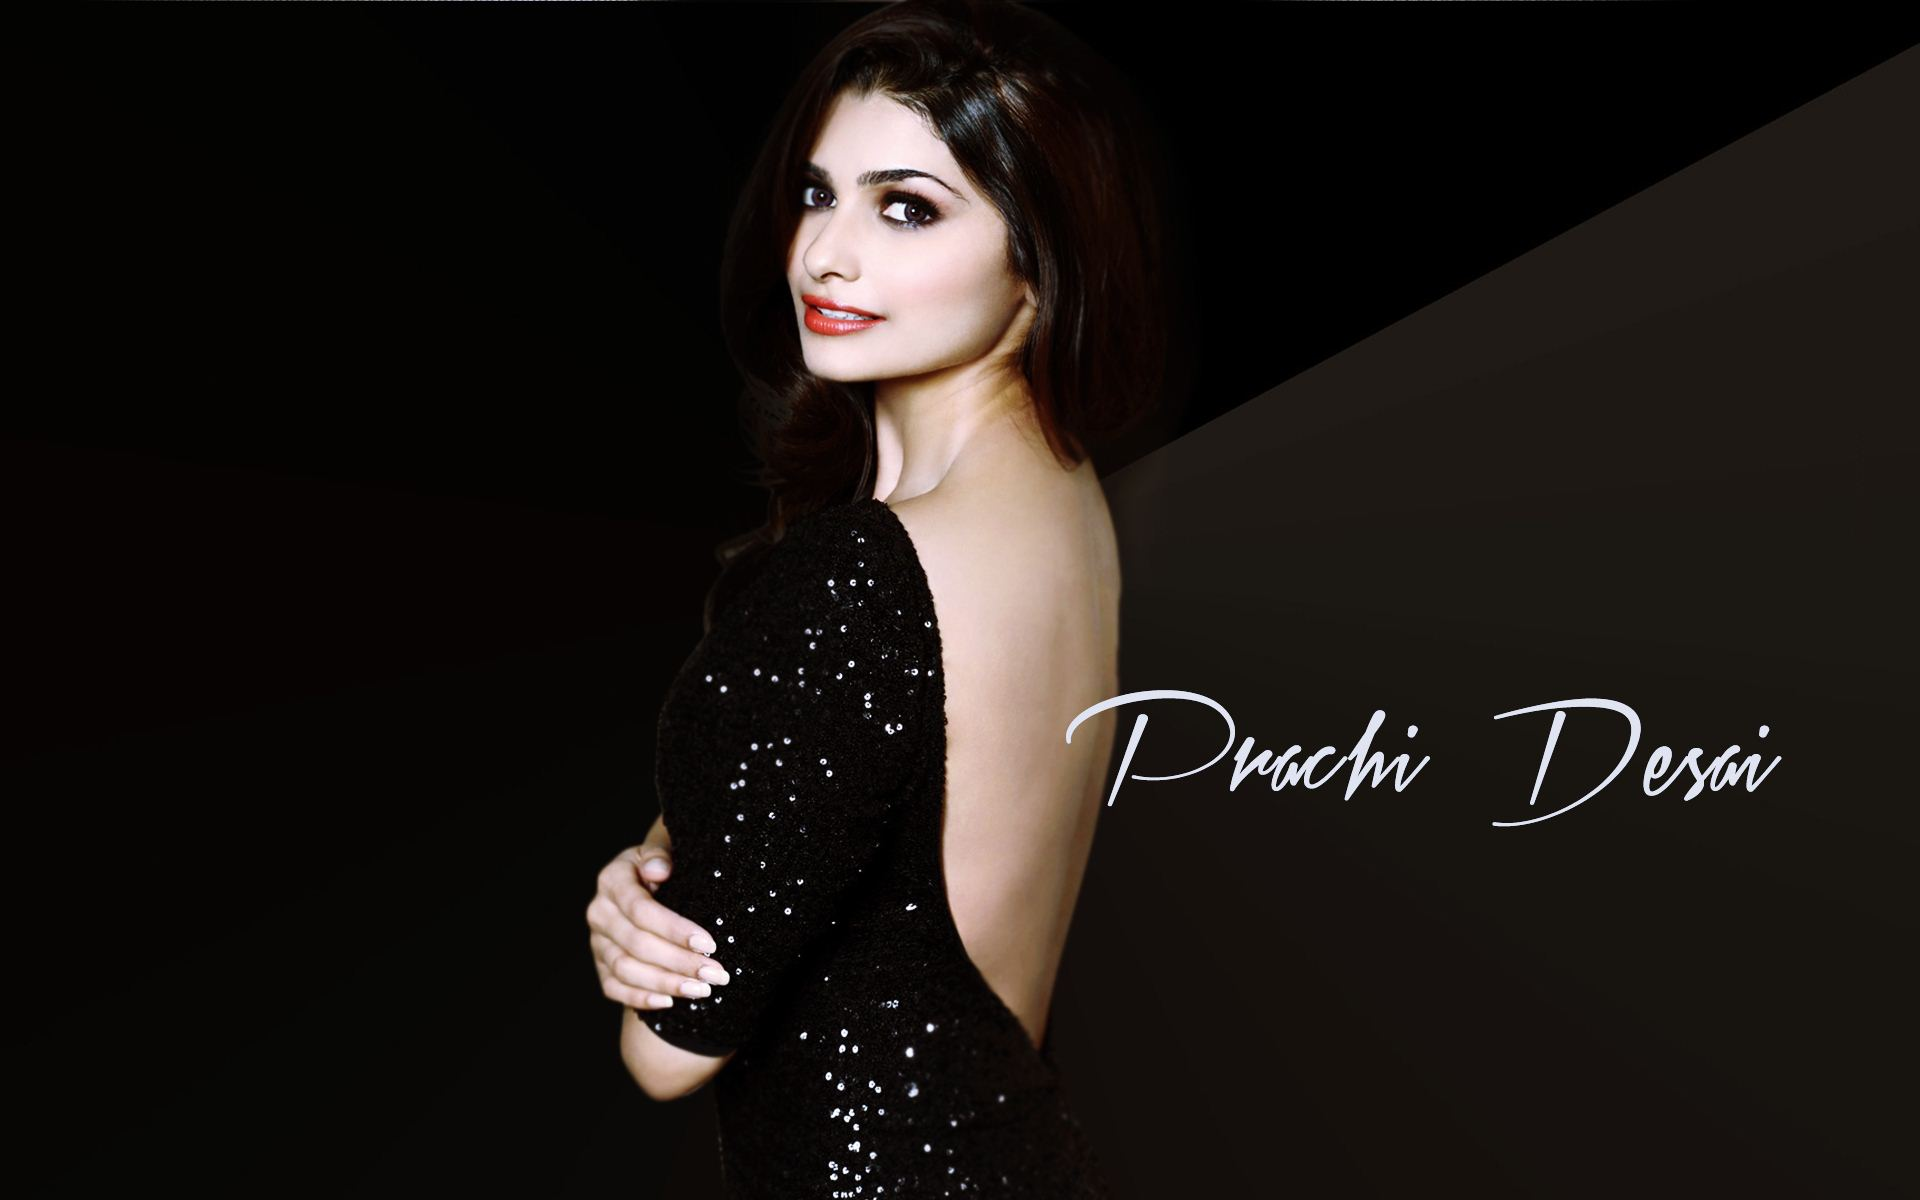 Prachi Desai Wallpapers High Resolution and Quality Download